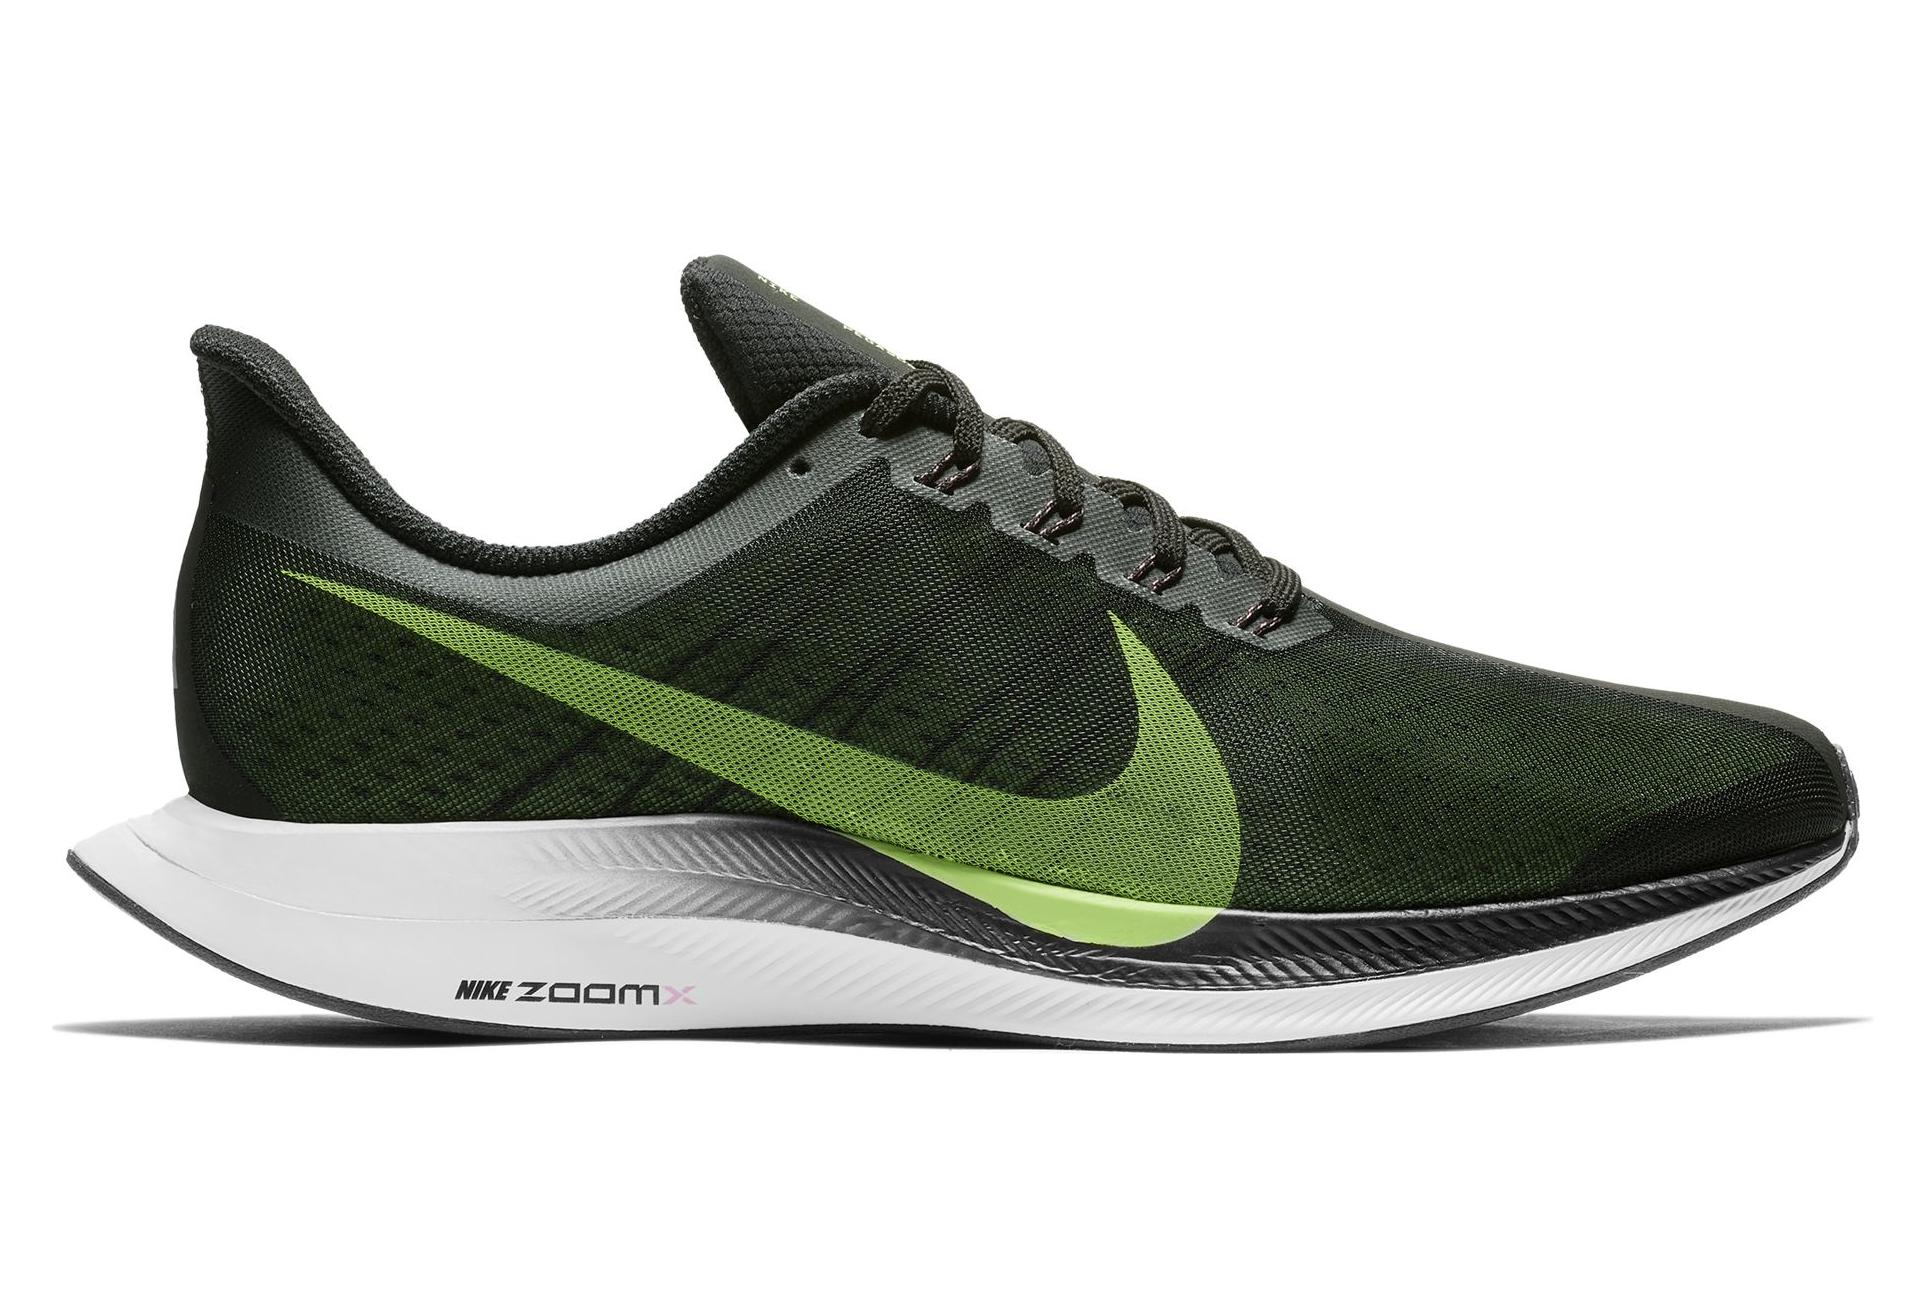 f14bb22c1dca4 Nike Zoom Pegasus Turbo Black Green Men